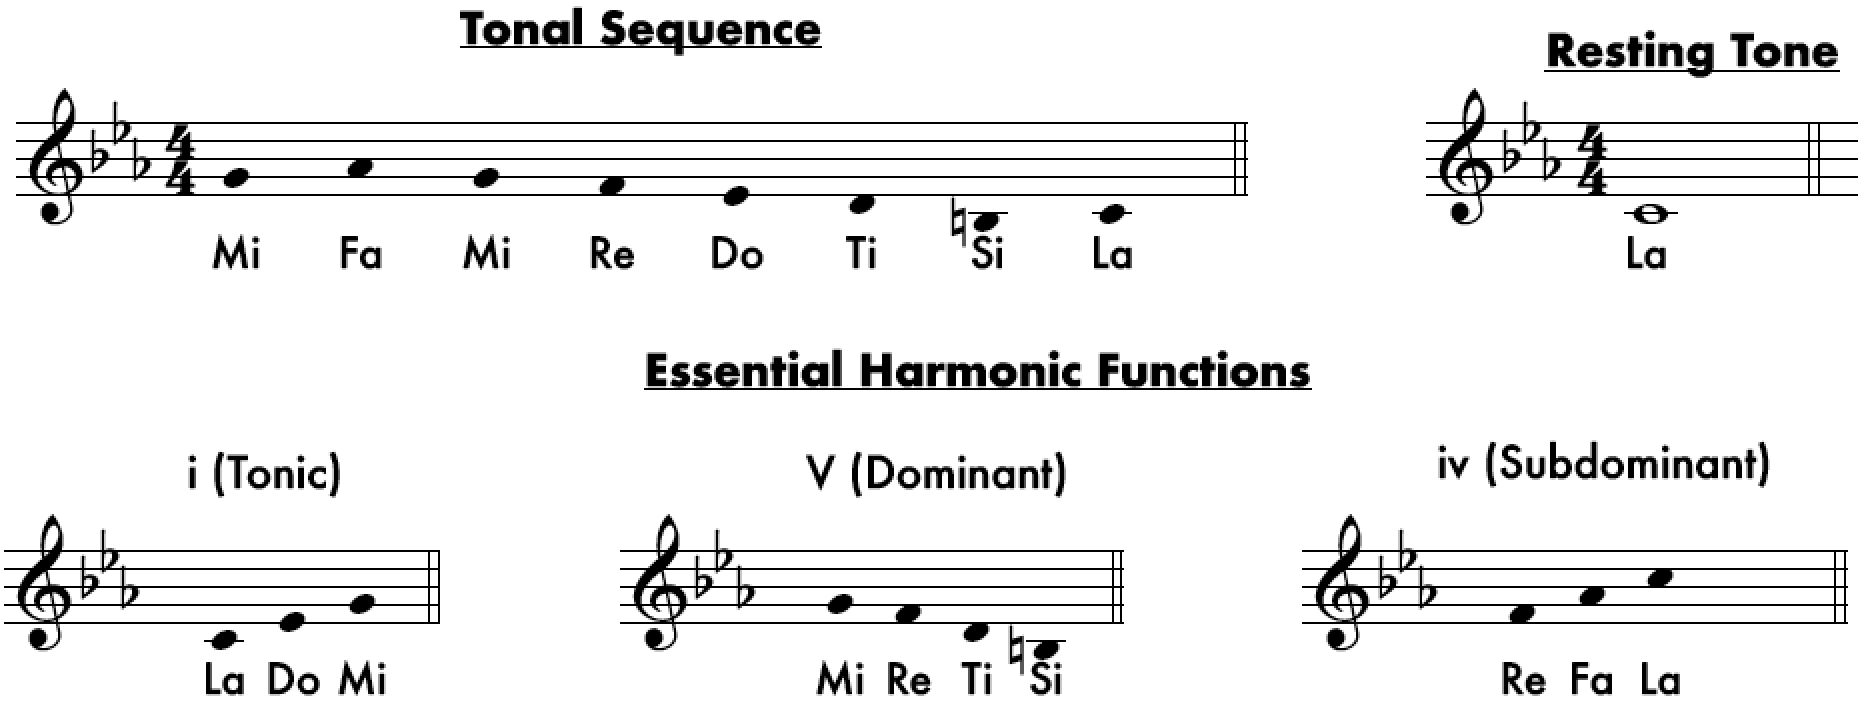 Minor Tonality - From Major to Locrian: An Overview of The Tonalities